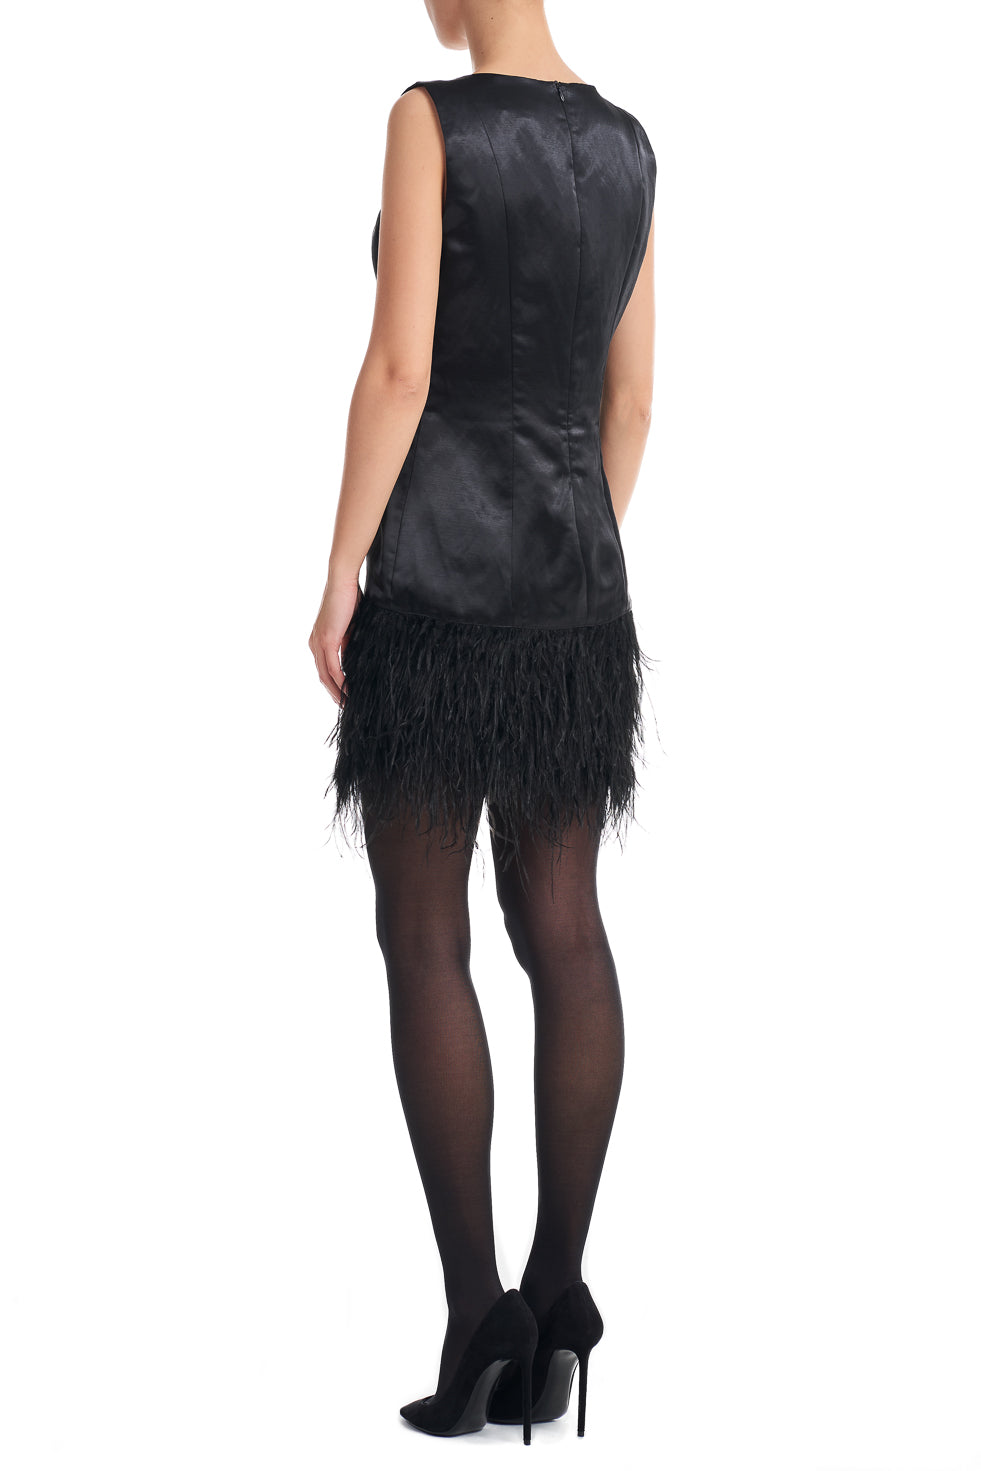 Bethany Black Feather Trim Mini Dress